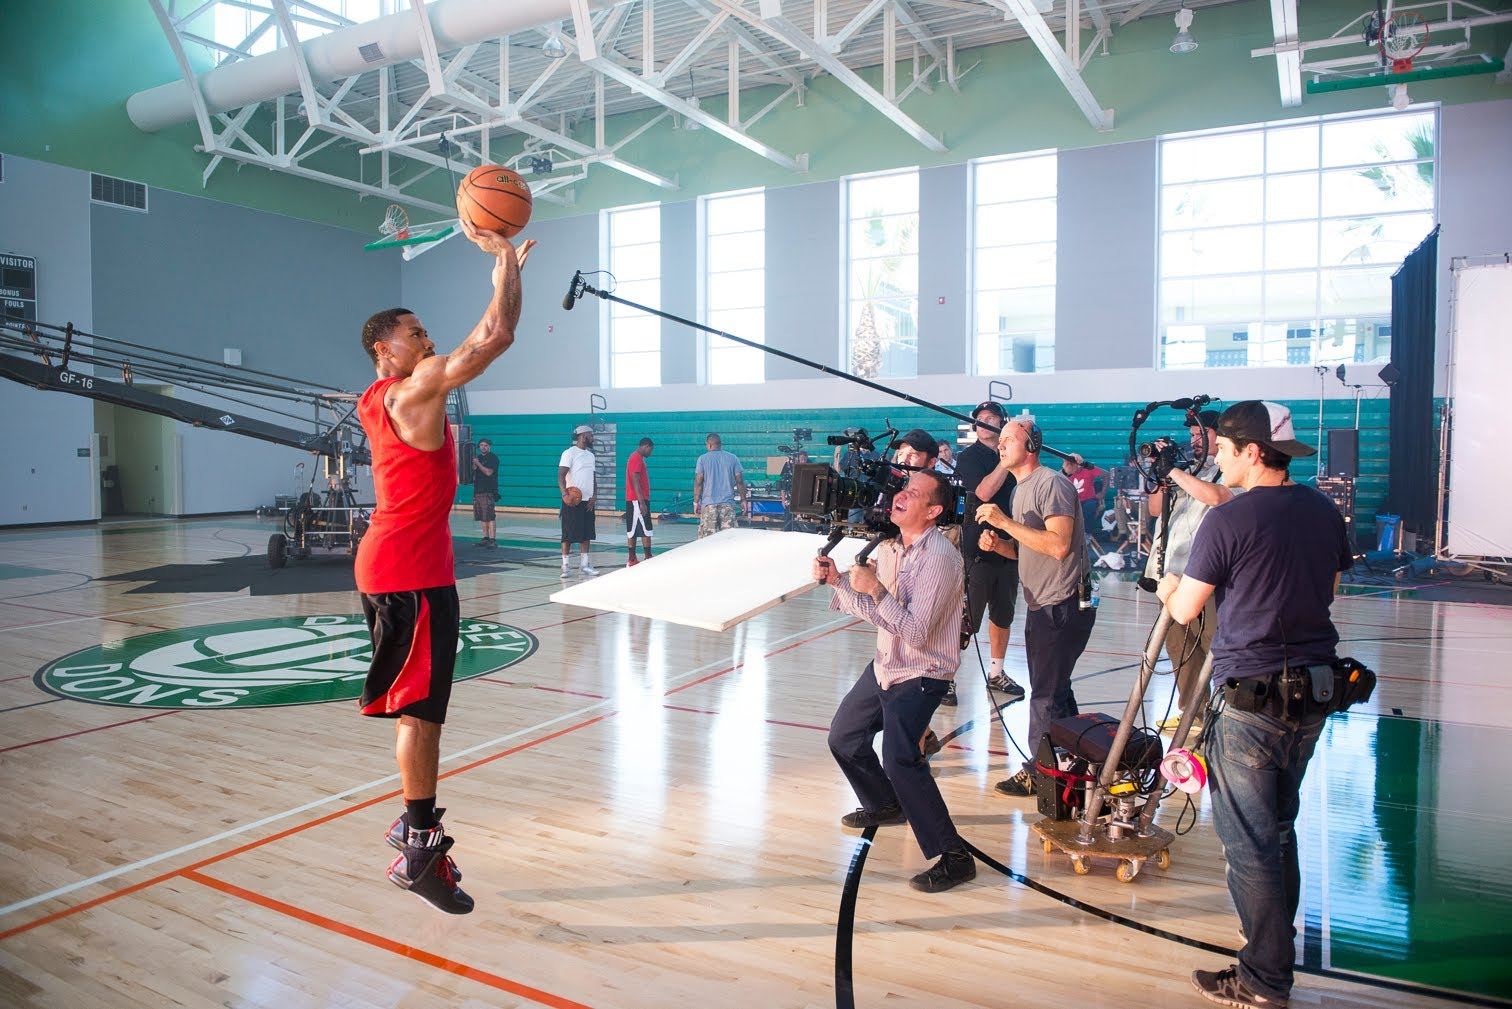 D Rose, 2 Chainz, Big Sean & More Star In Adidas Ad